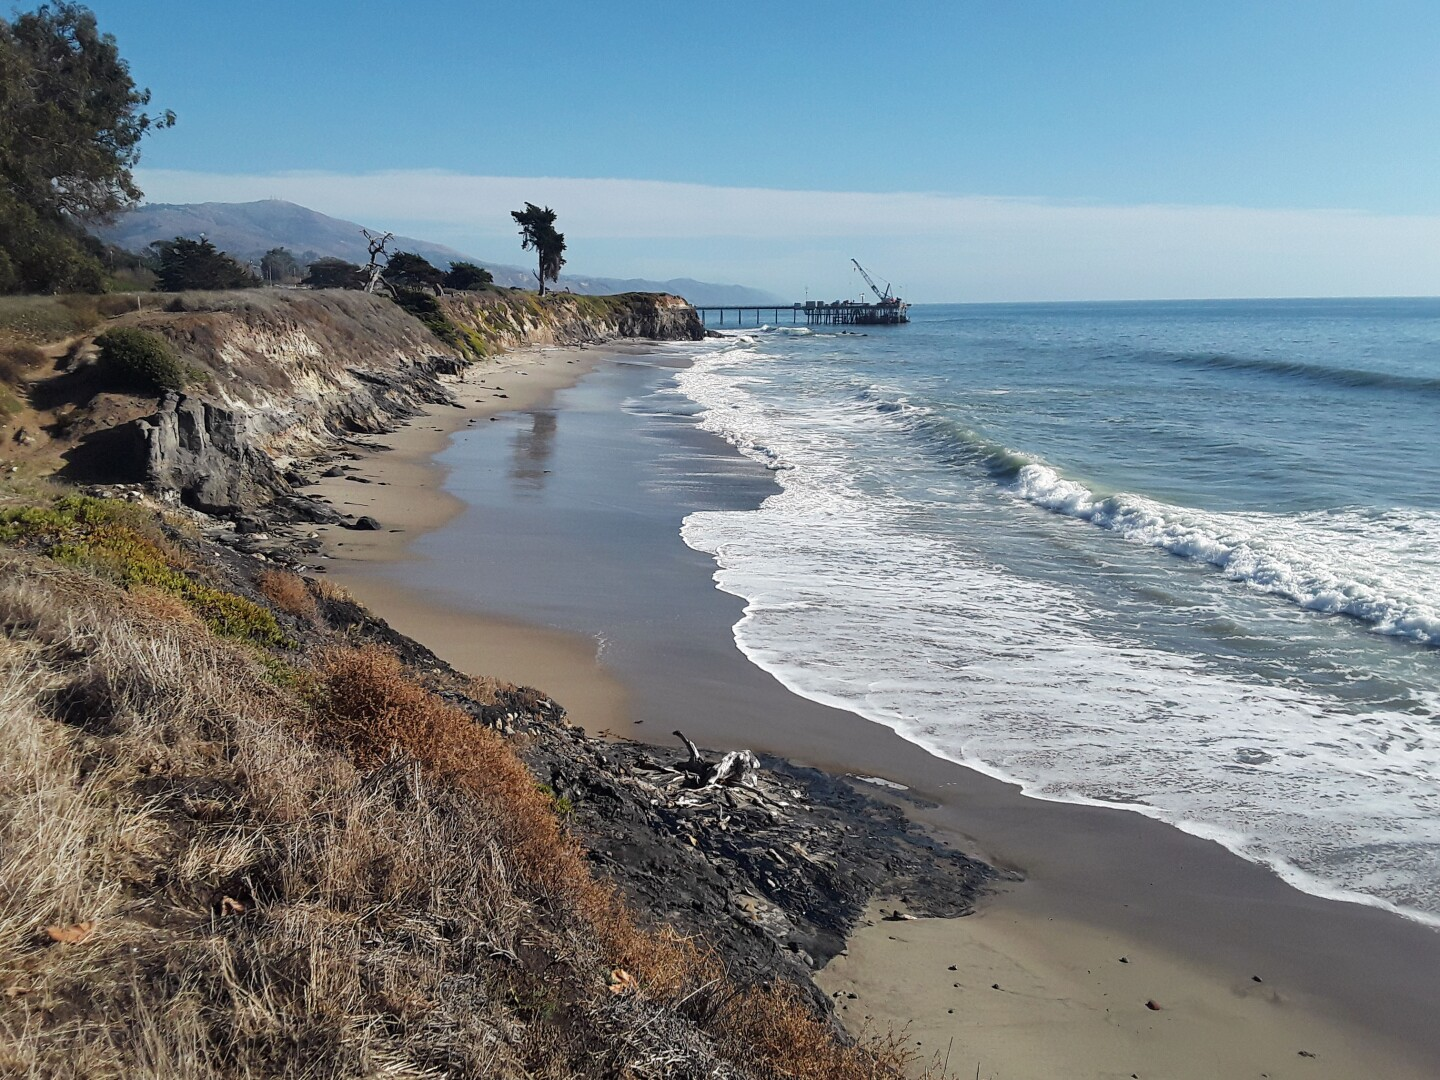 A wave pushes in on the shore of Carpinteria State Beach as a small hill of black tar builds right at the start of the beach.